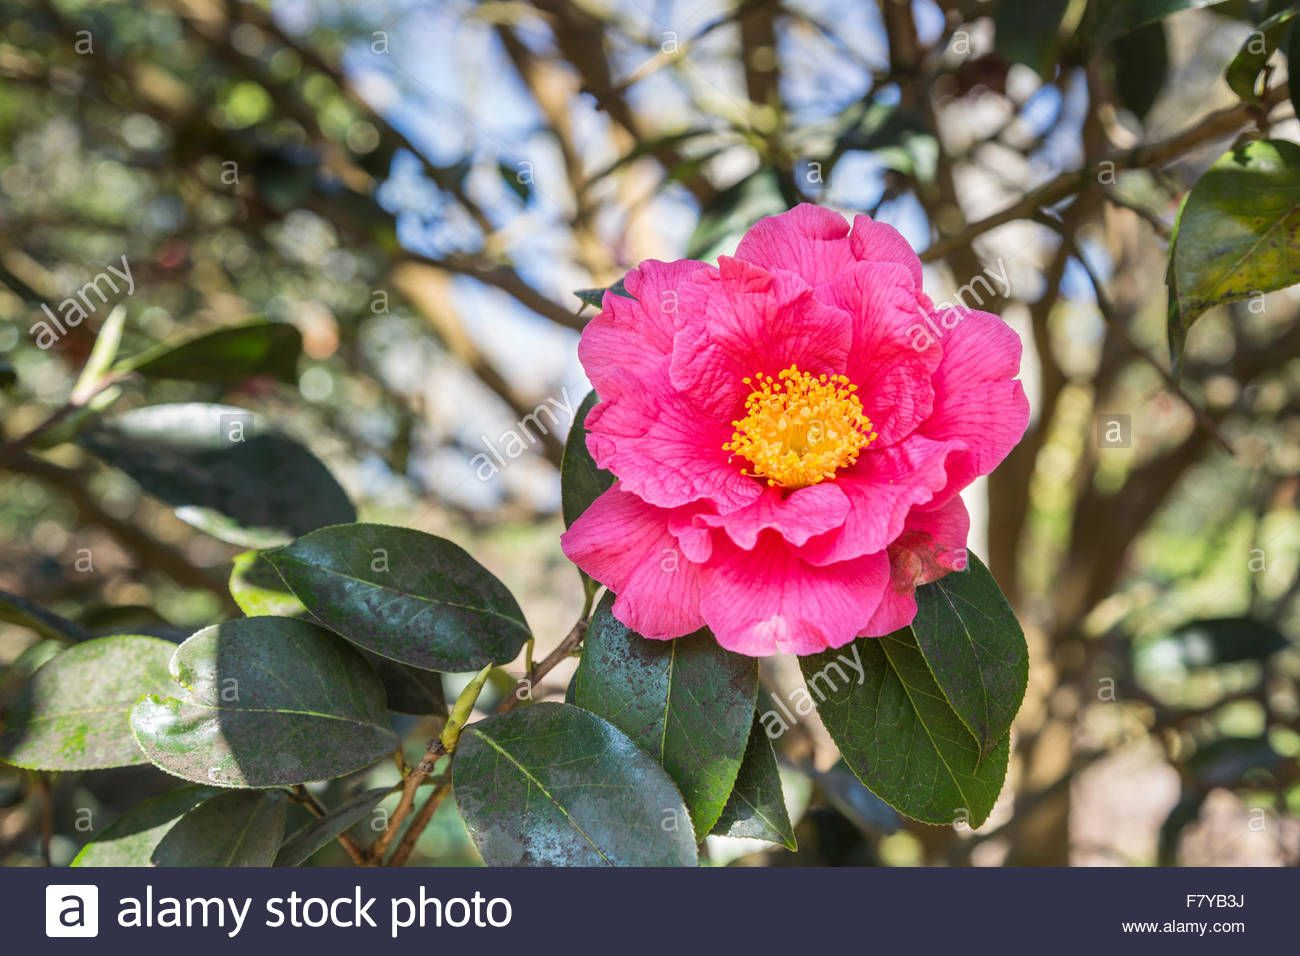 Download This Stock Image Pink Camellia 39 Milo Rowell 39 With Yellow Stamens In Flower At Rhs Gardens Wisley Surrey Engla Flowers Stock Photos Camellia